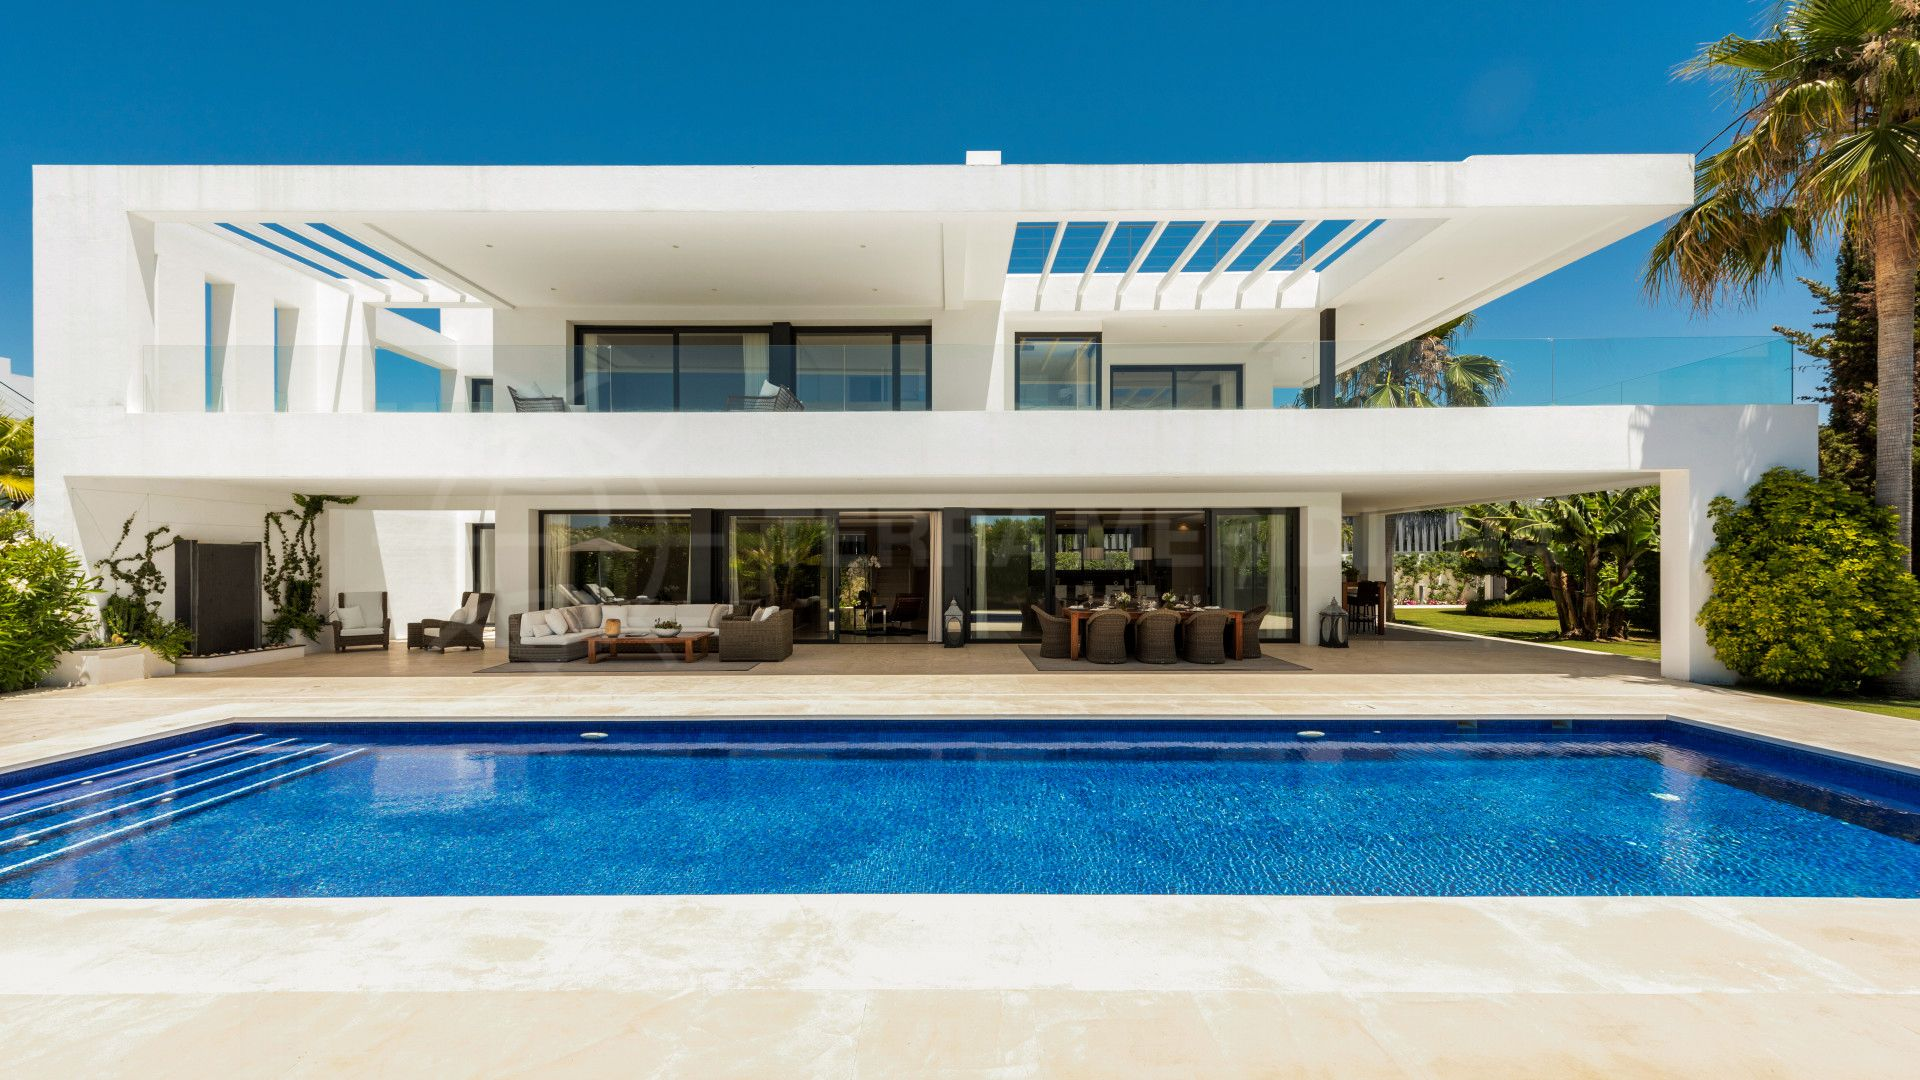 To build a villa from scratch or renovate – that is the question